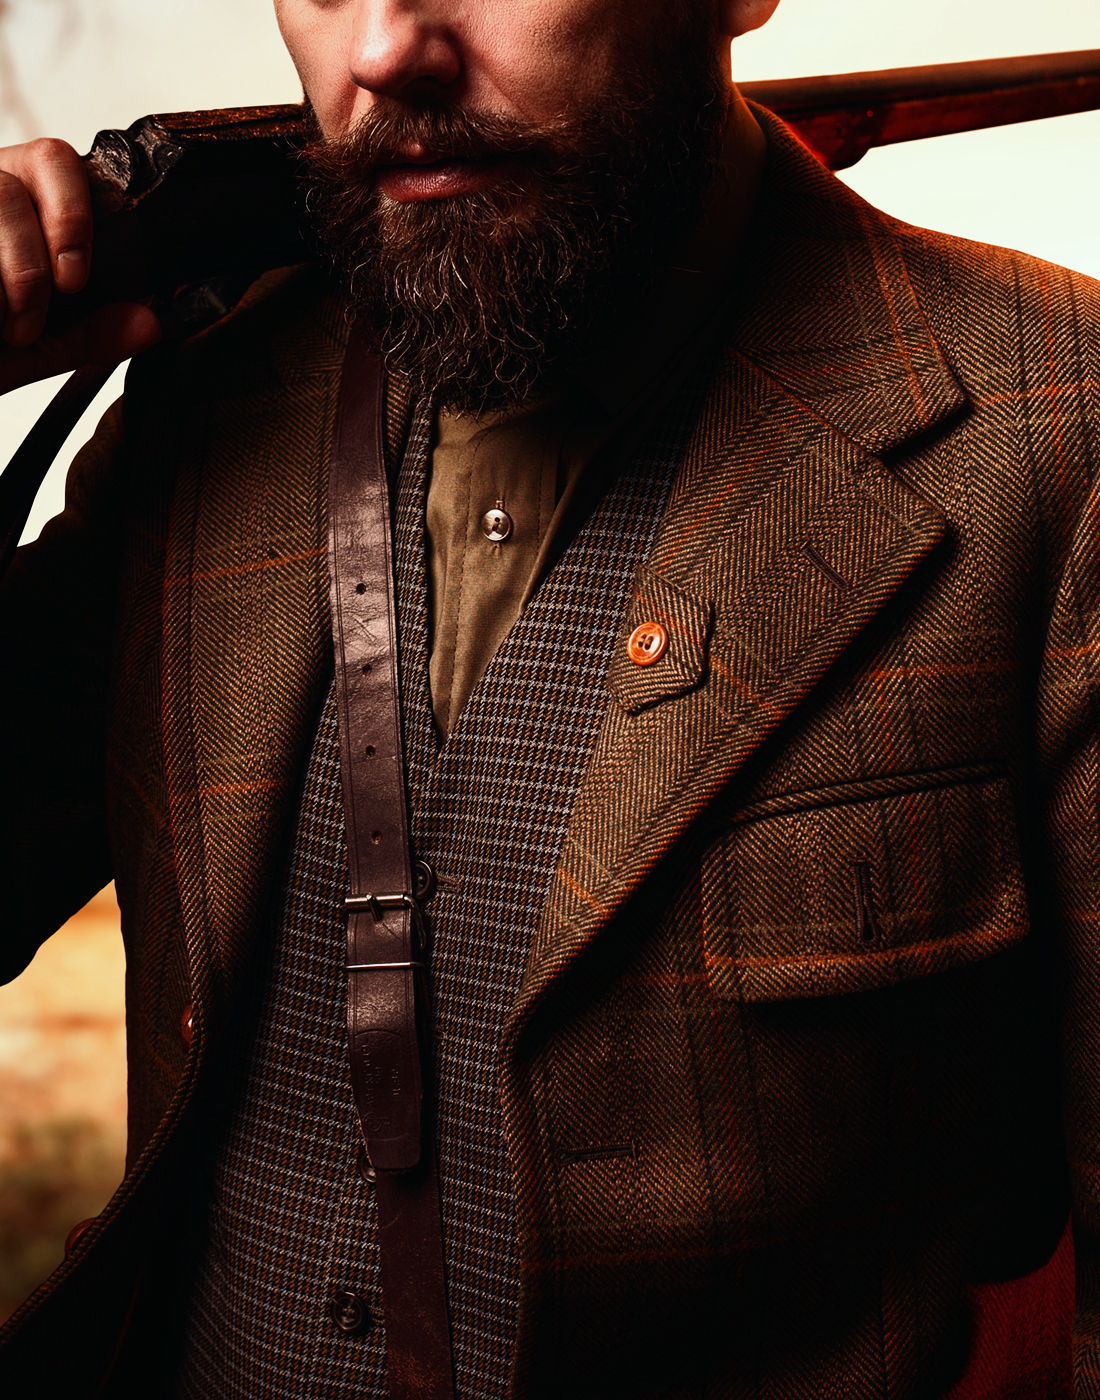 Men's custom brown suit jacket